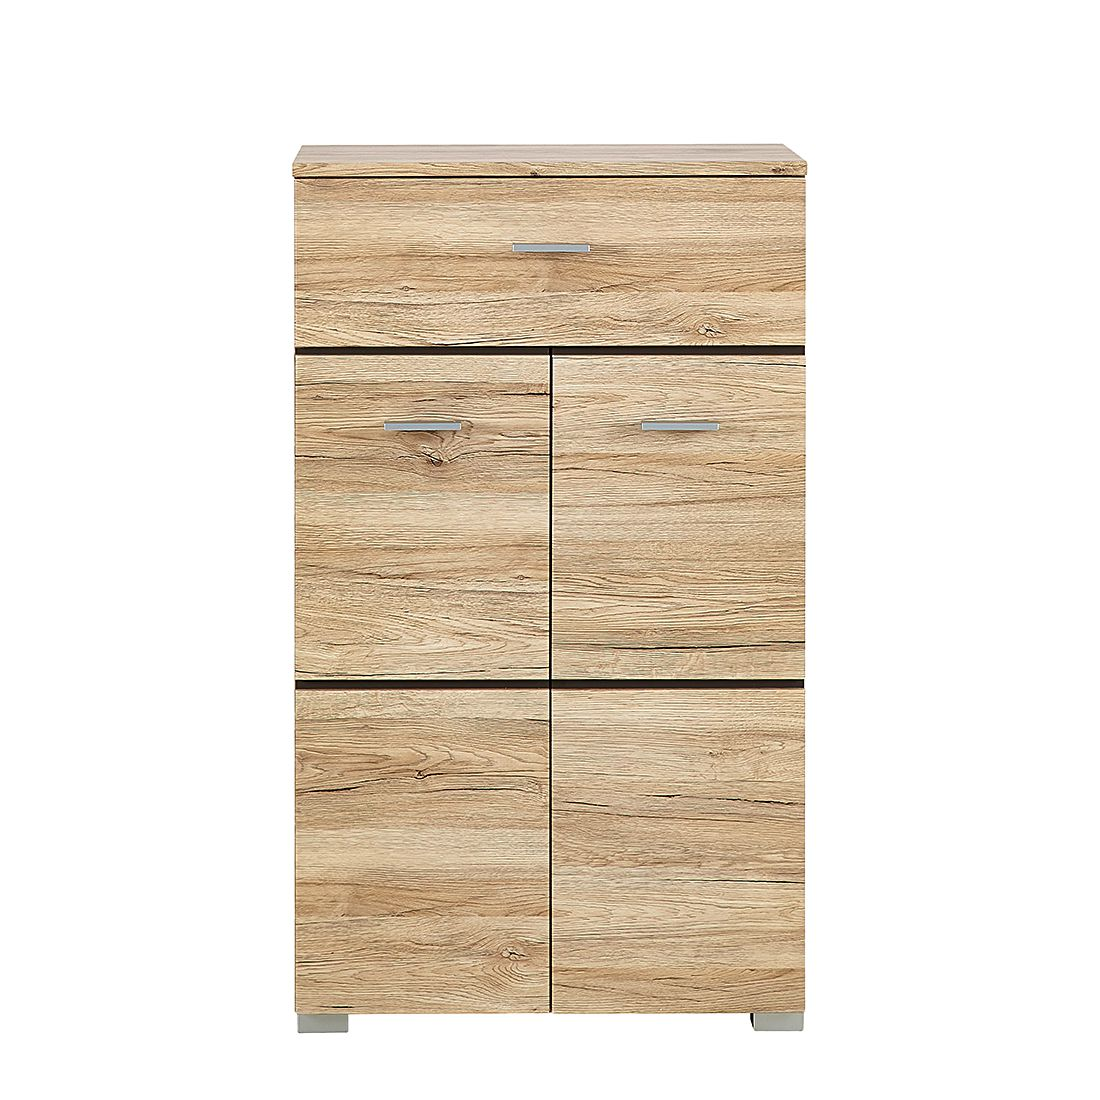 schuhschrank 40 cm breit preisvergleiche. Black Bedroom Furniture Sets. Home Design Ideas